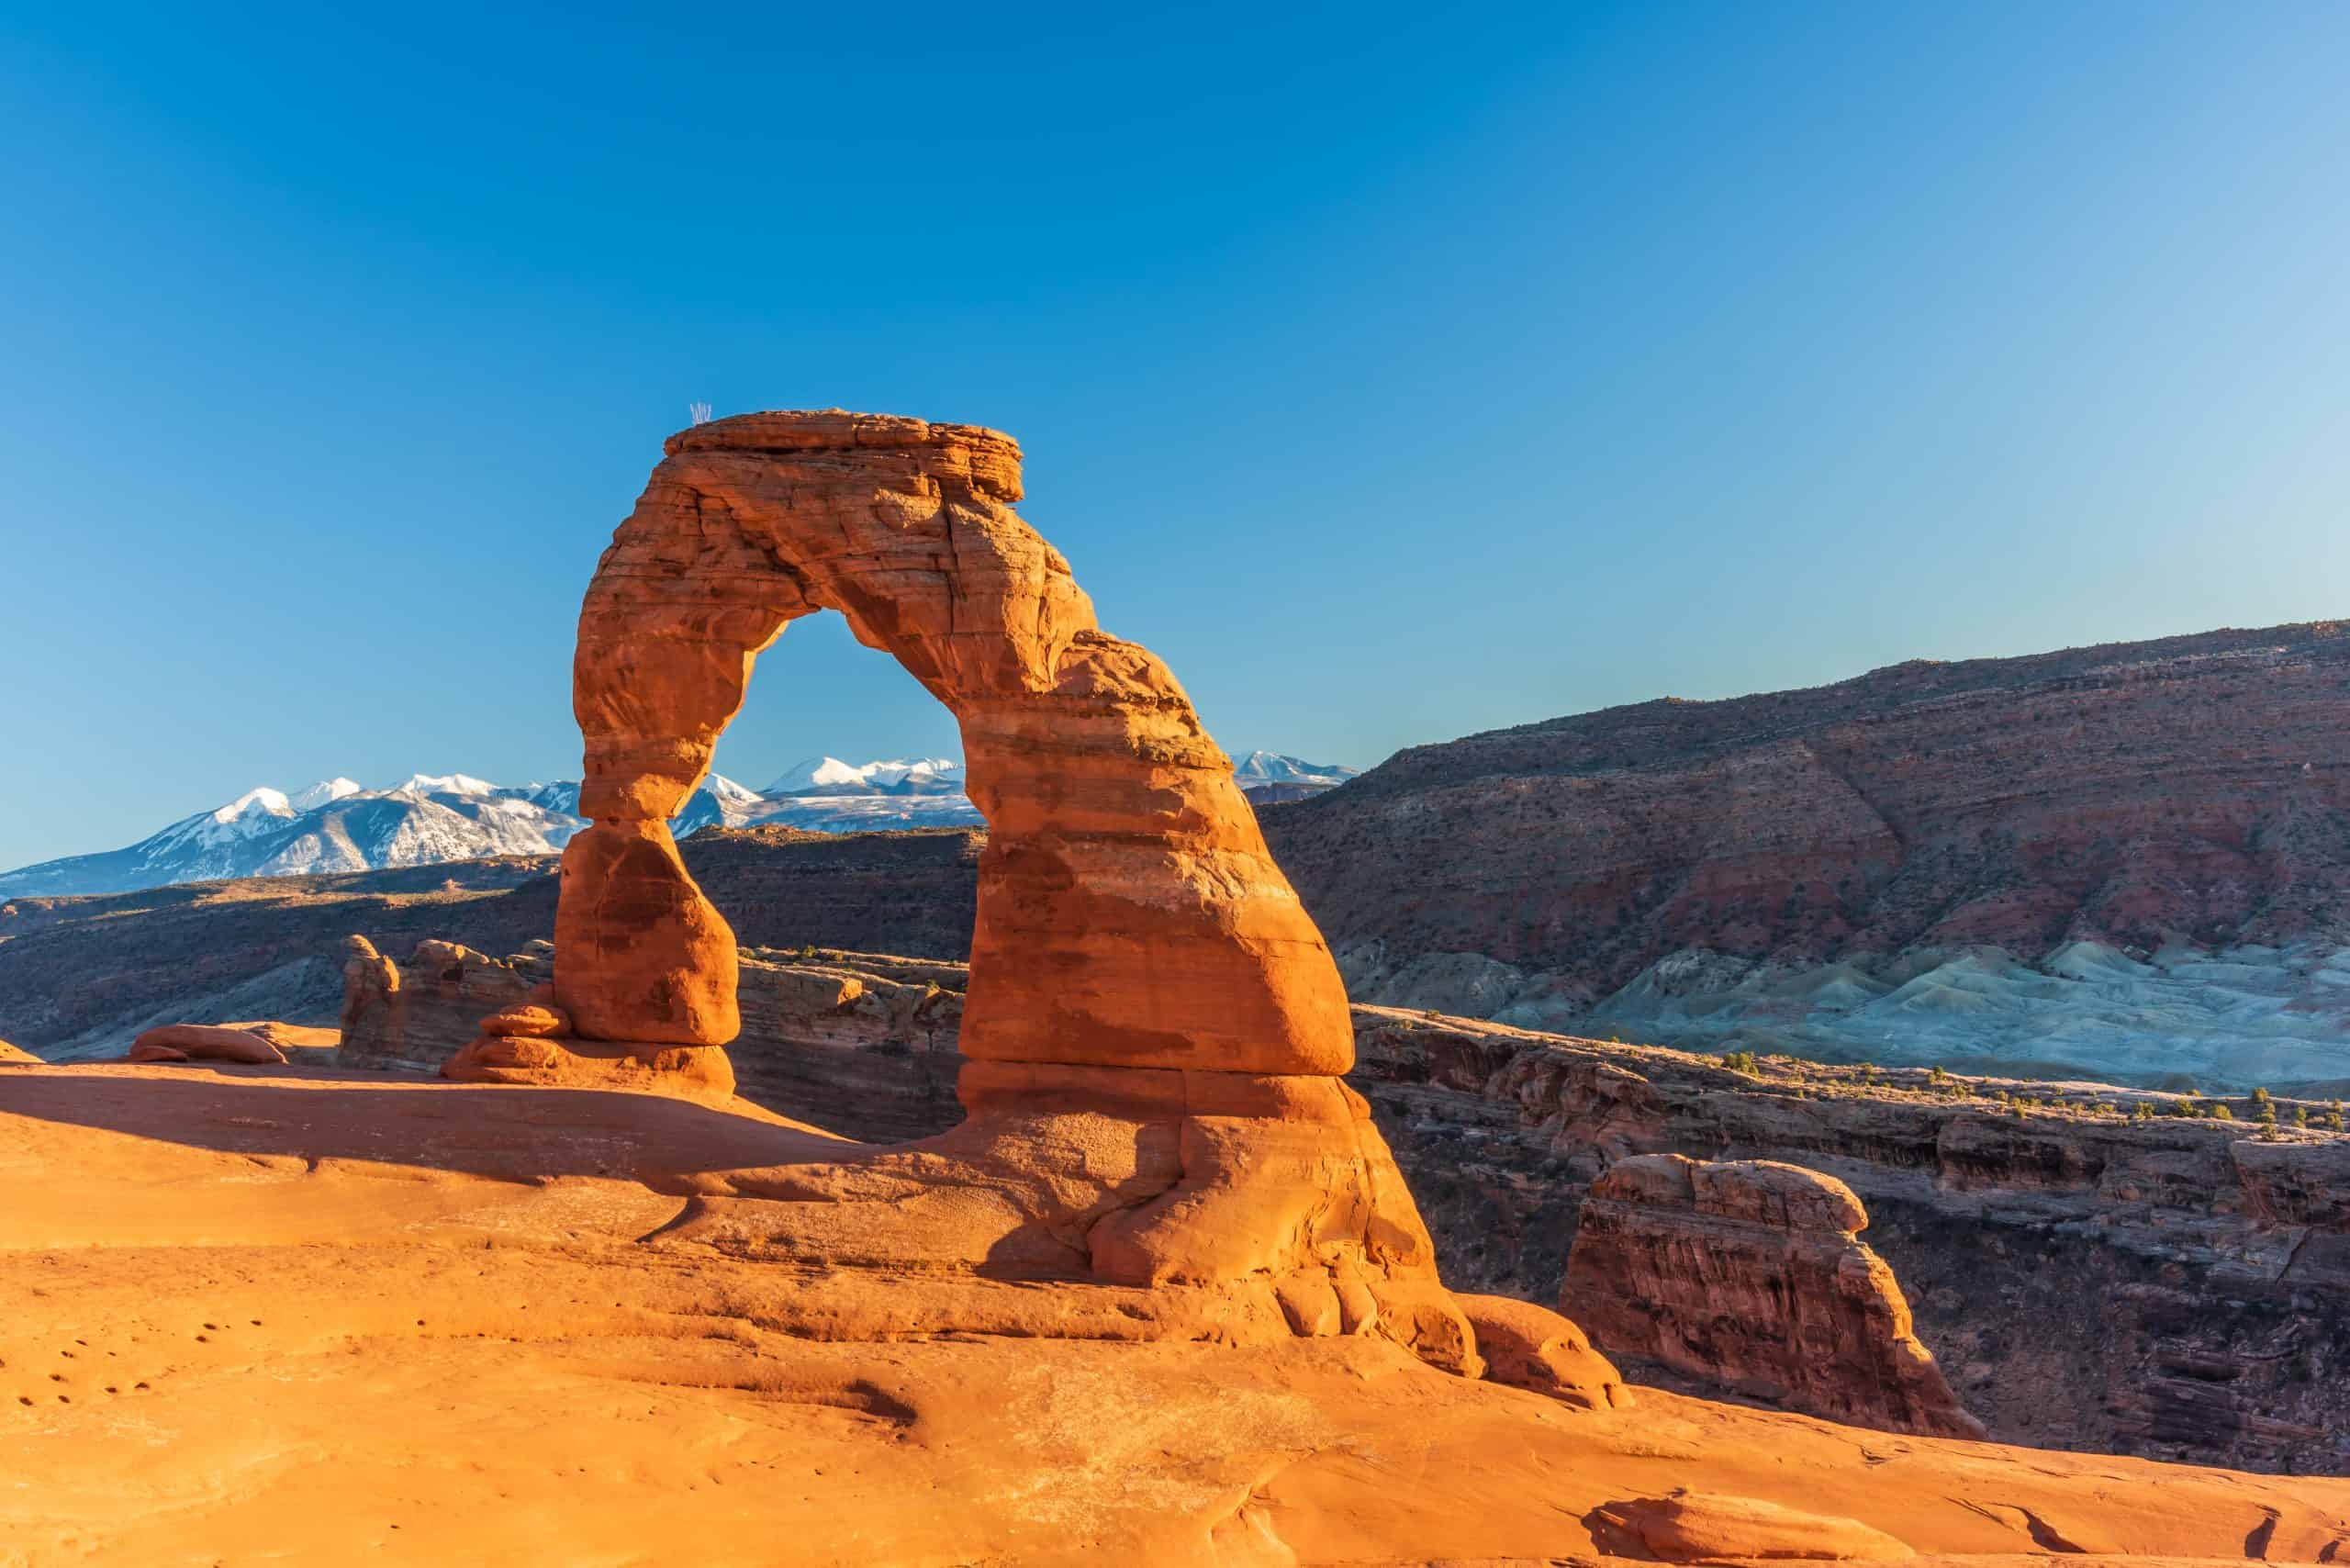 Iconic Delicate Arch at Arches National Park.